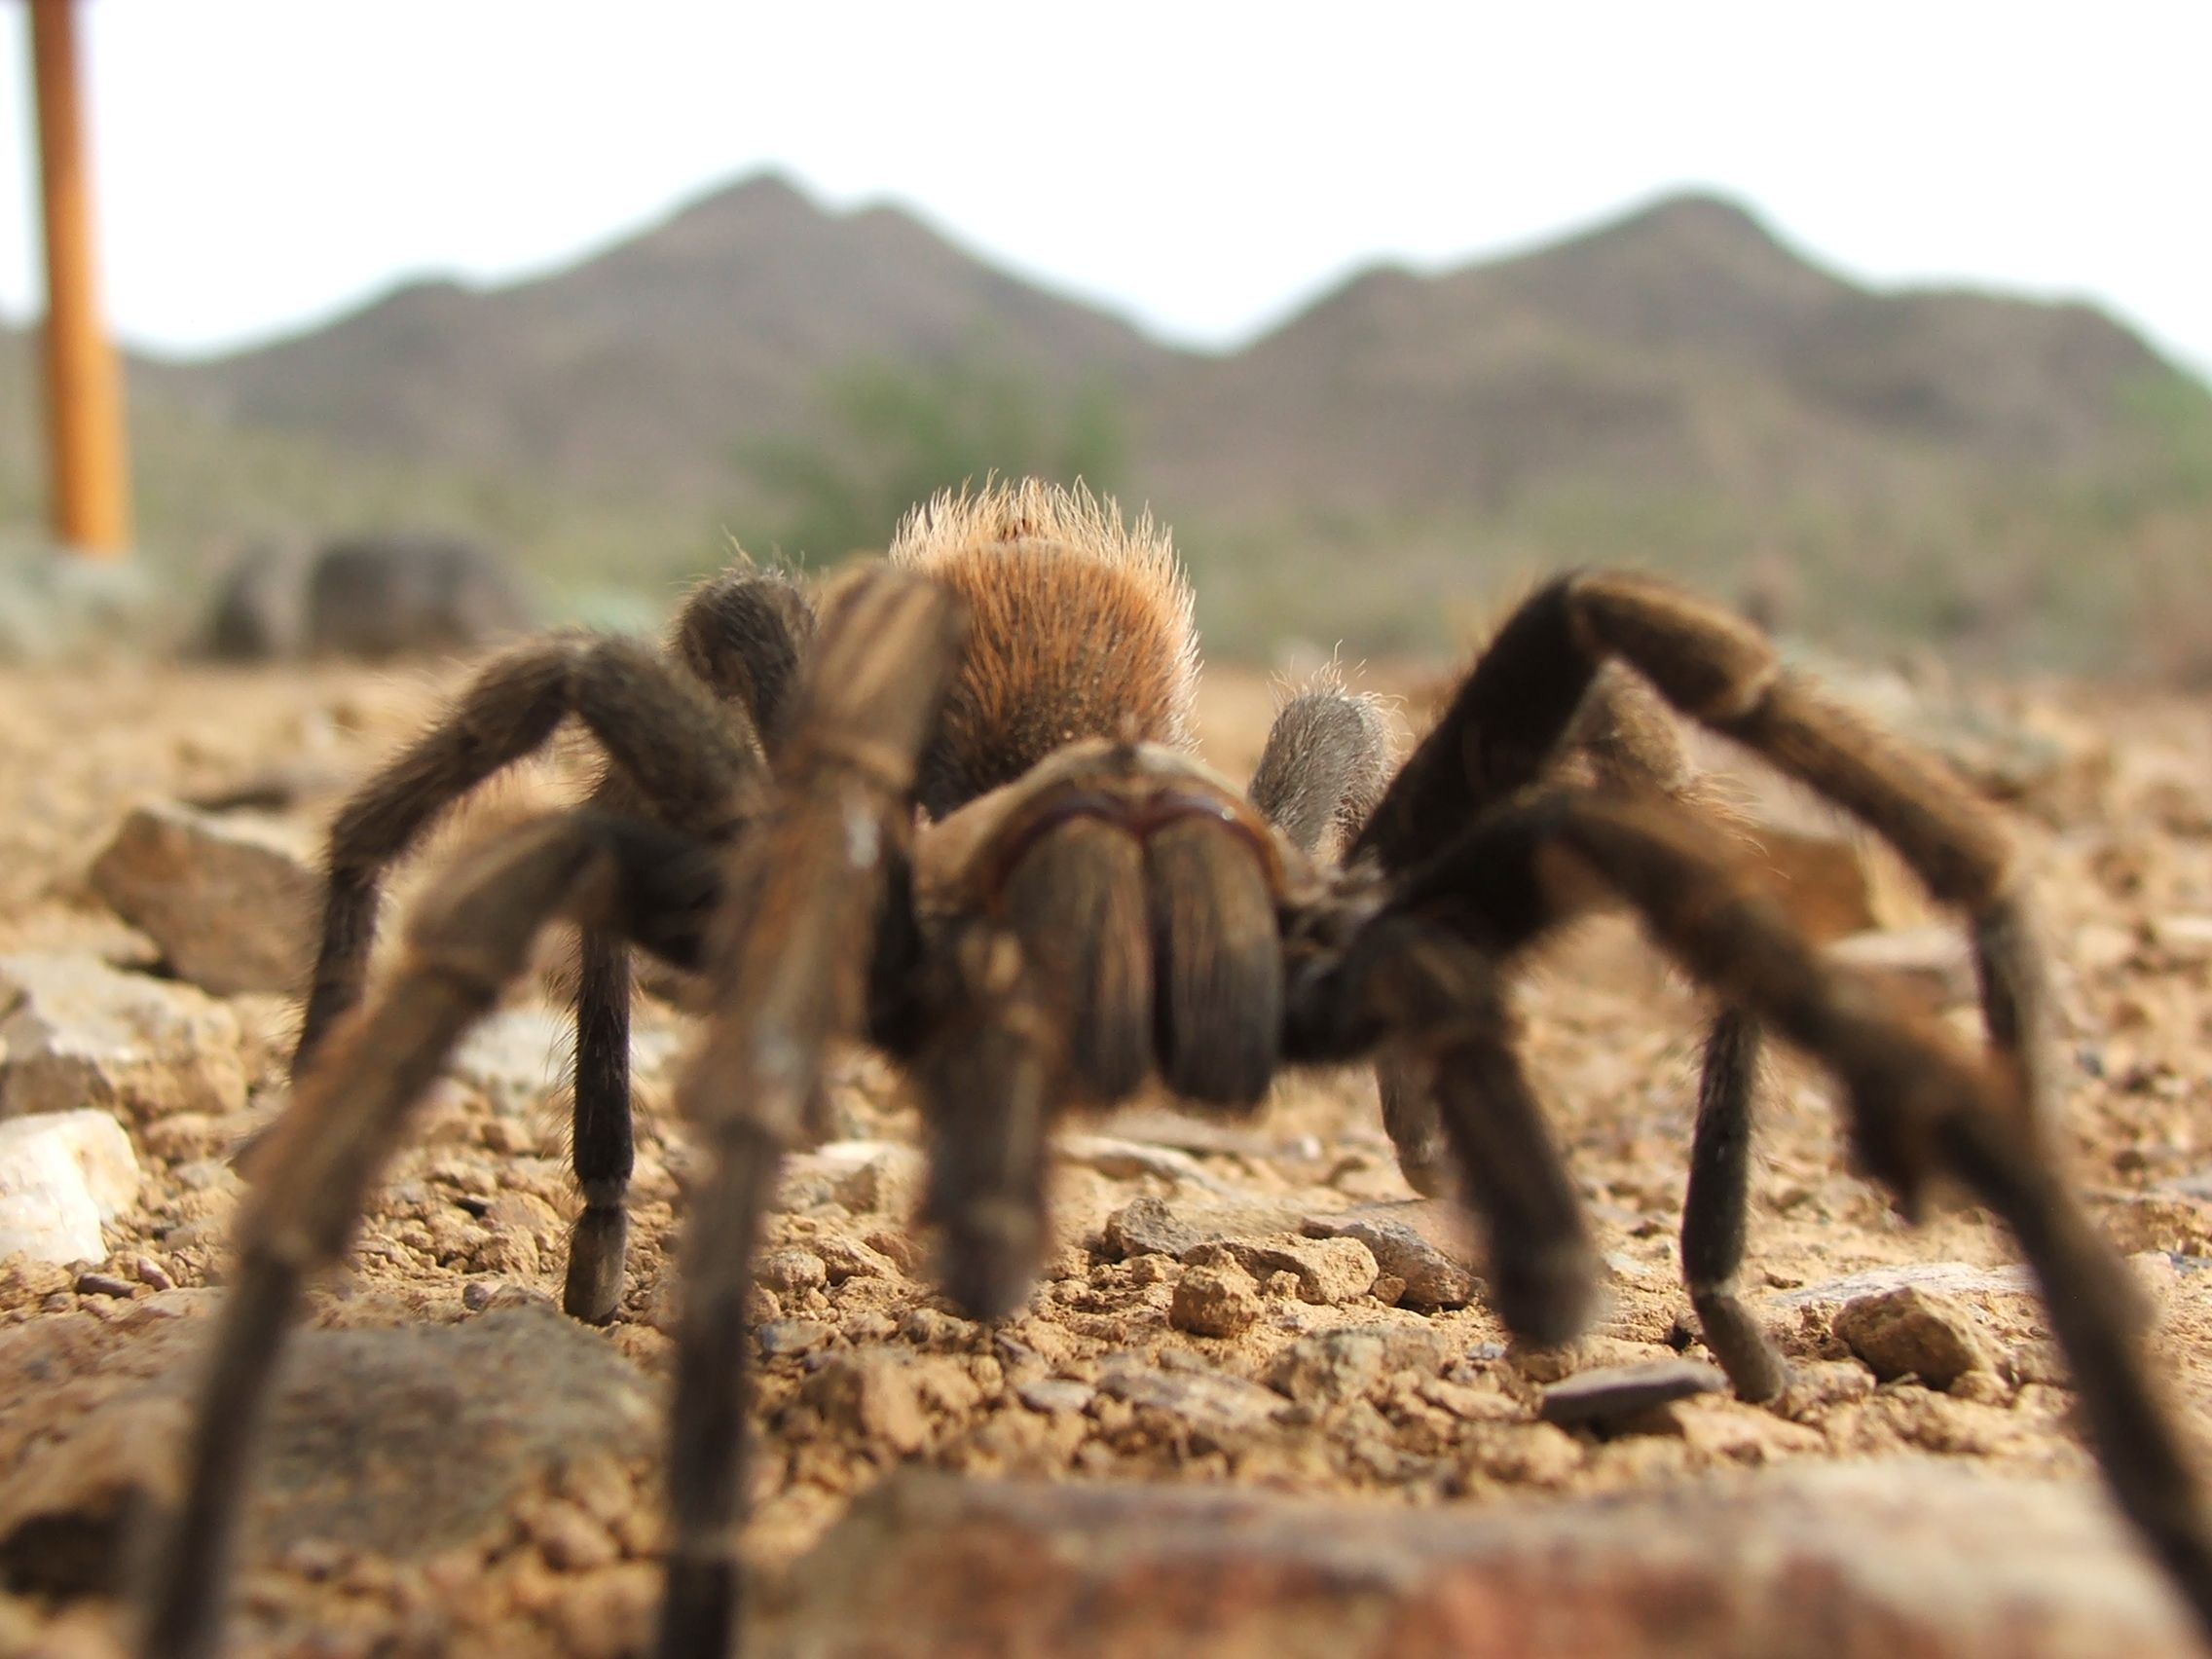 Tarantula at Cave Creek Regional Park Desert animals